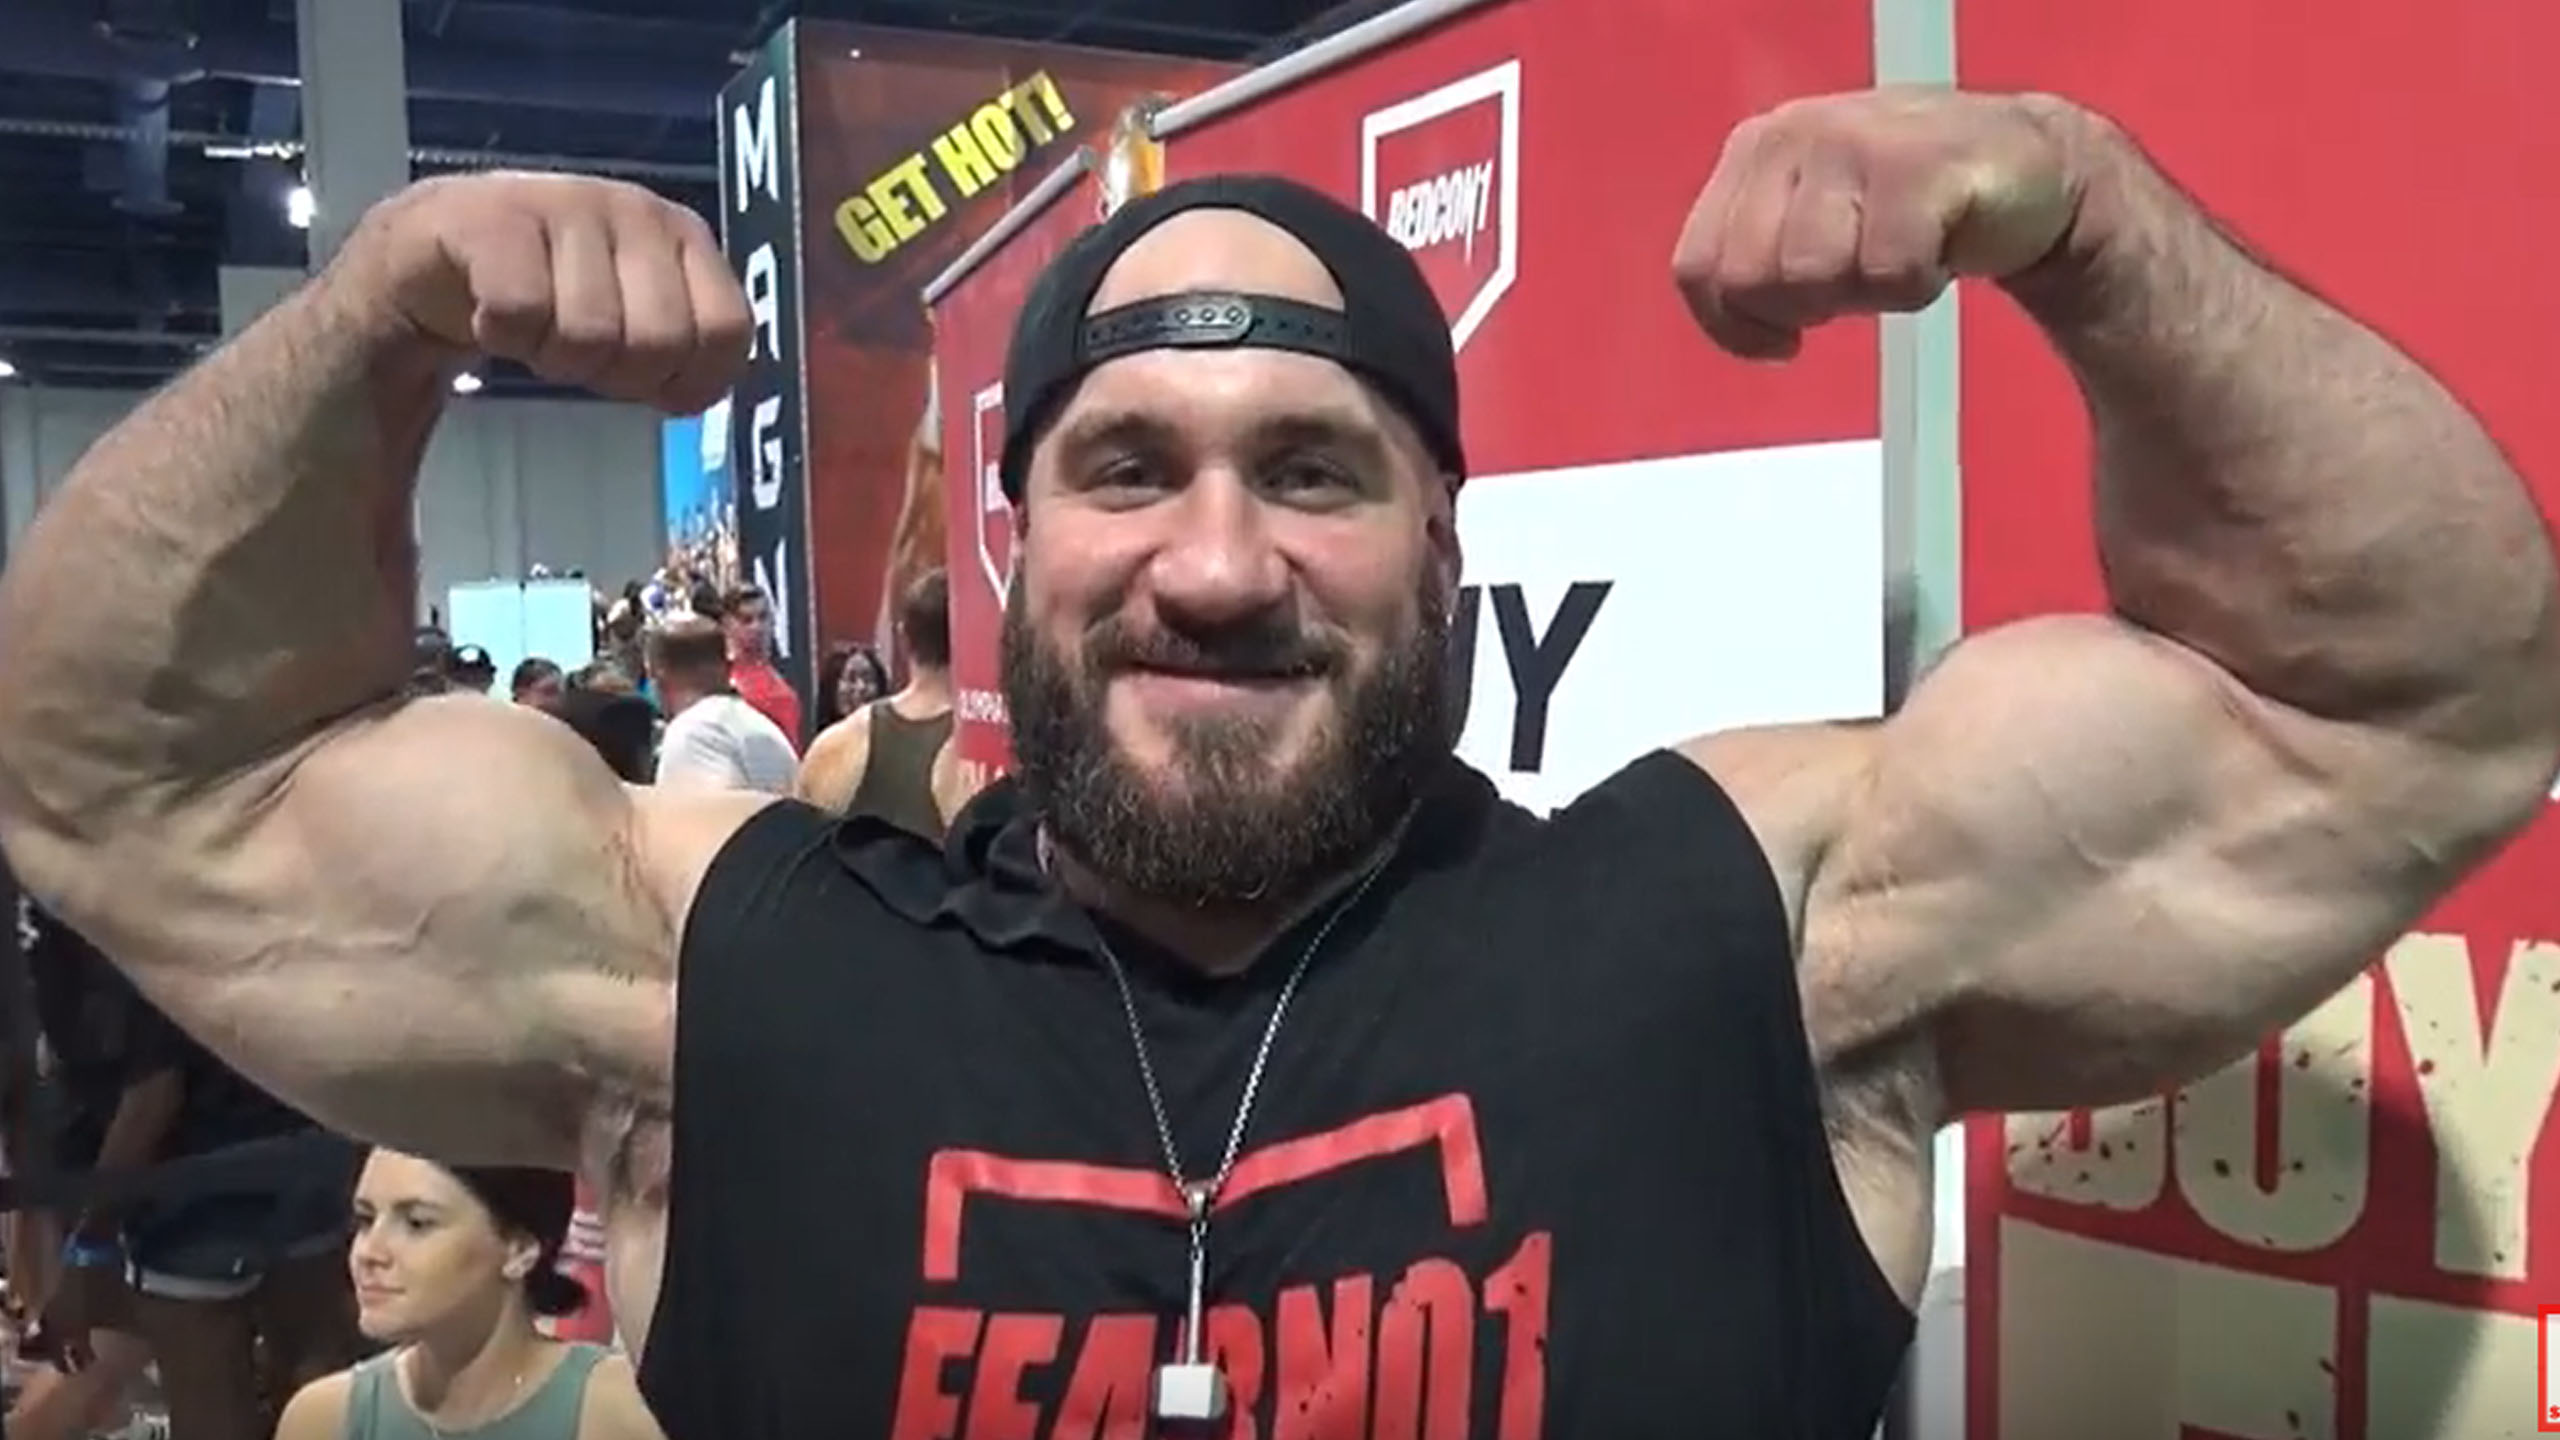 antoine vaillant interview olympia